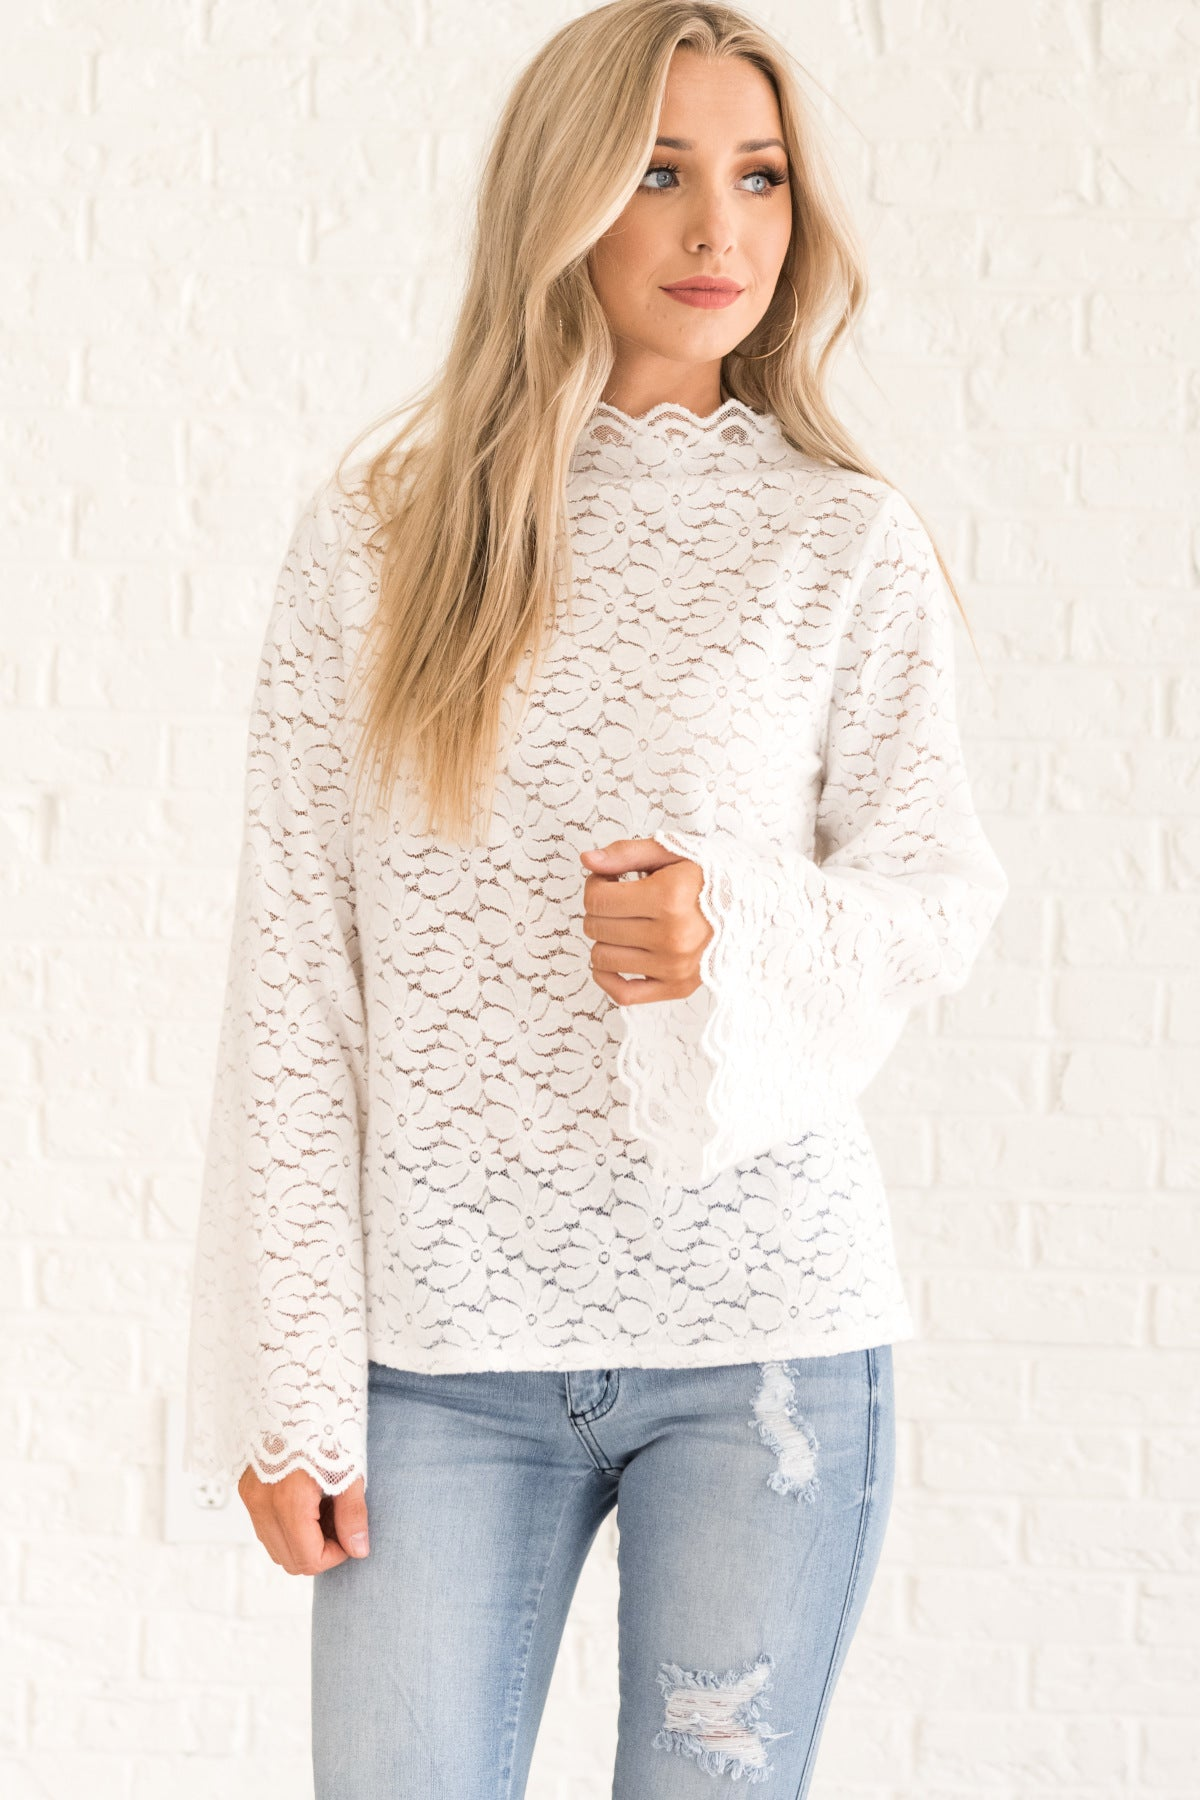 White Lace Long Sleeve Blouses from Affordable Online Boutique